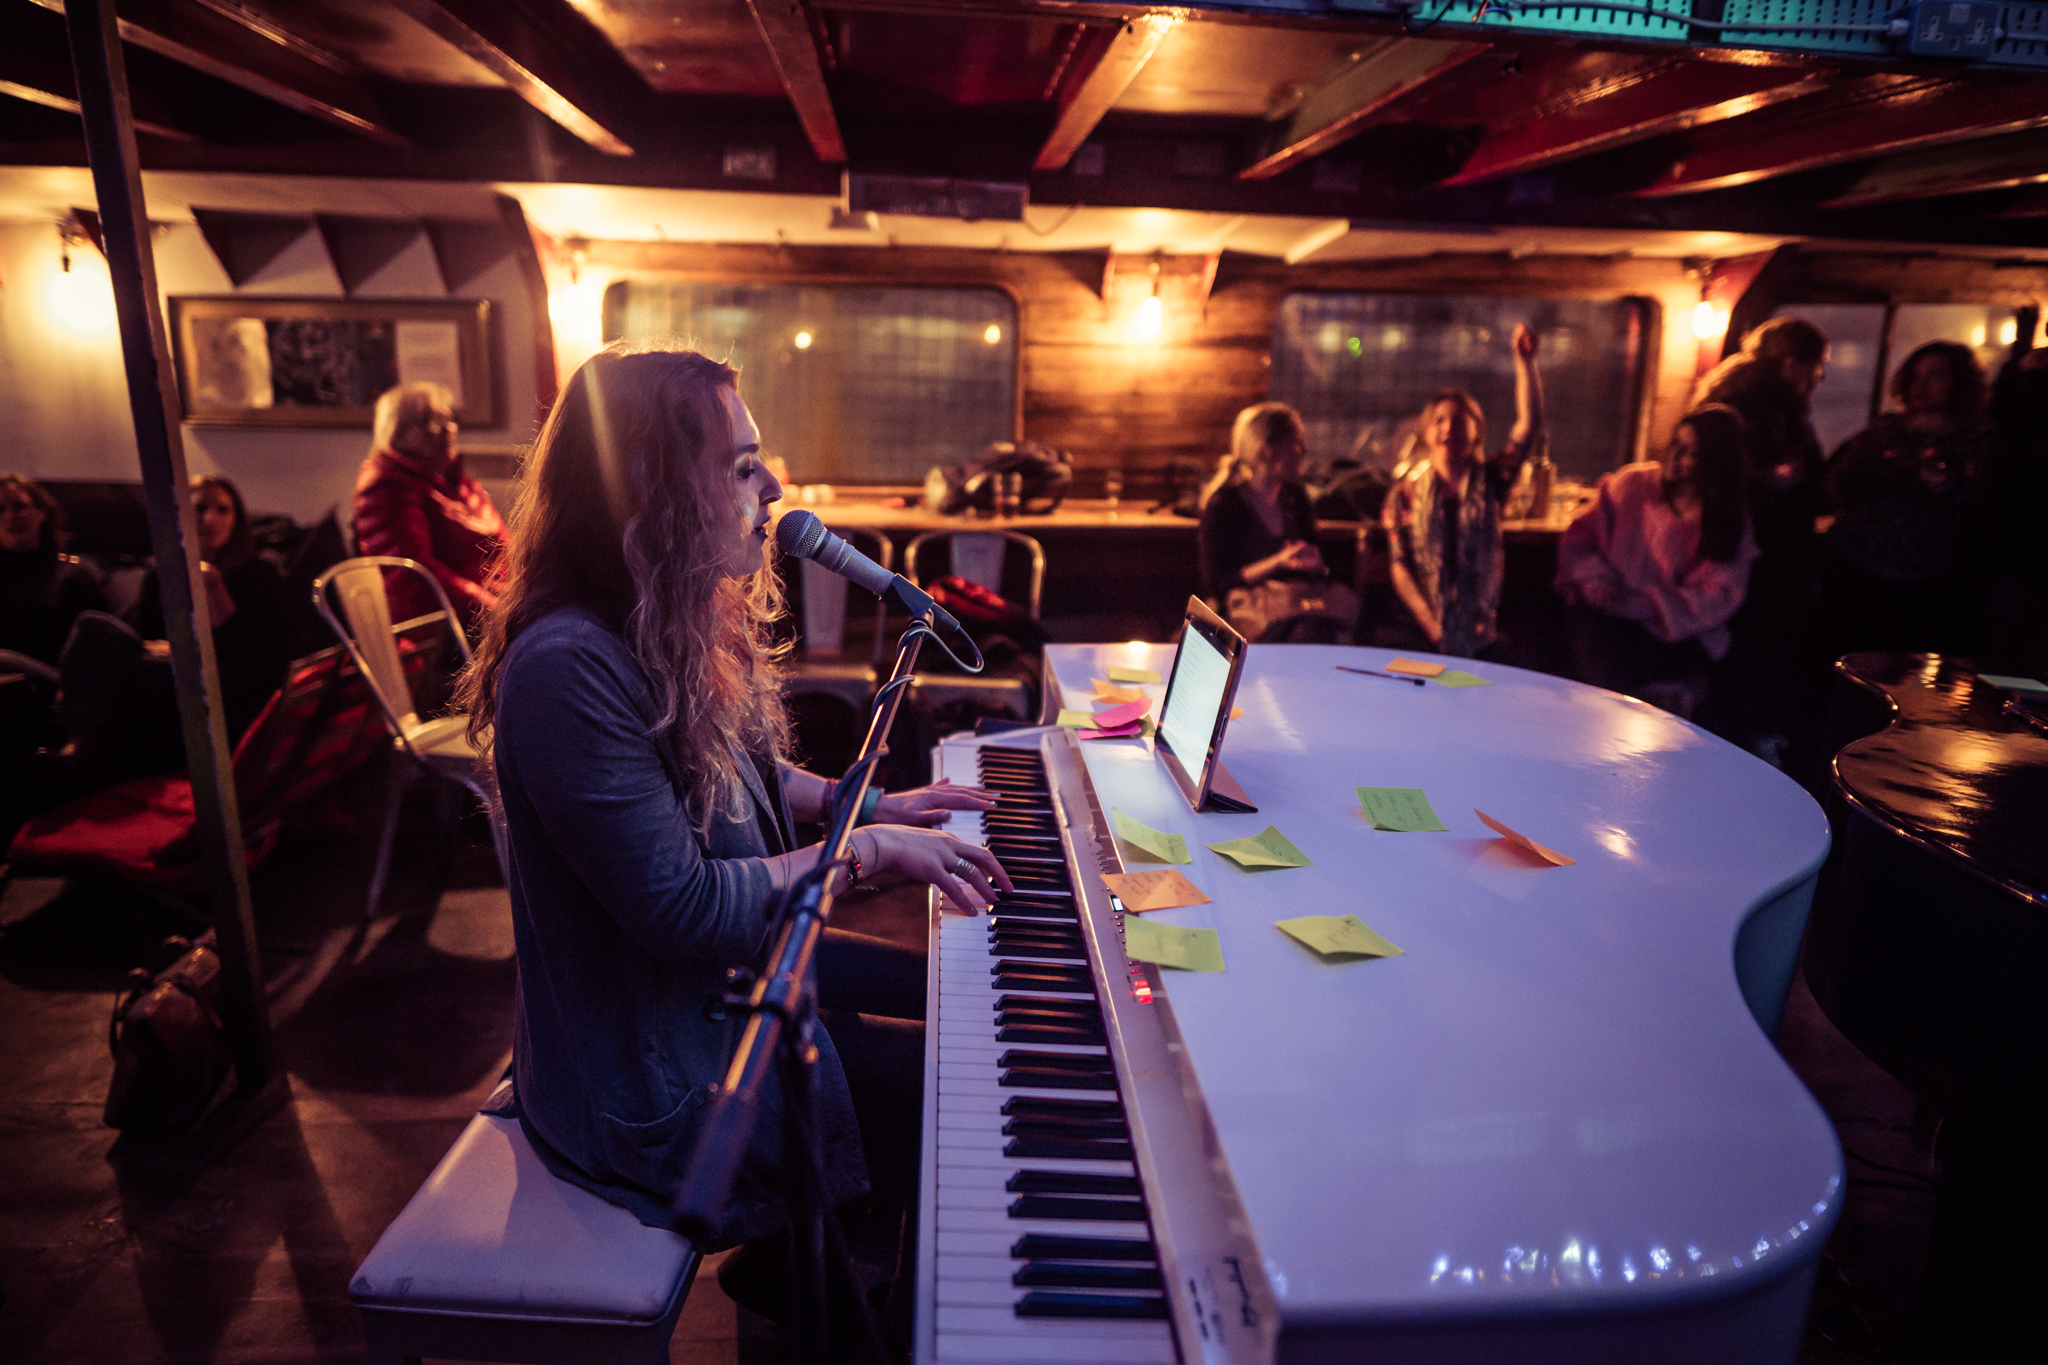 Duelling Pianos on The Thames